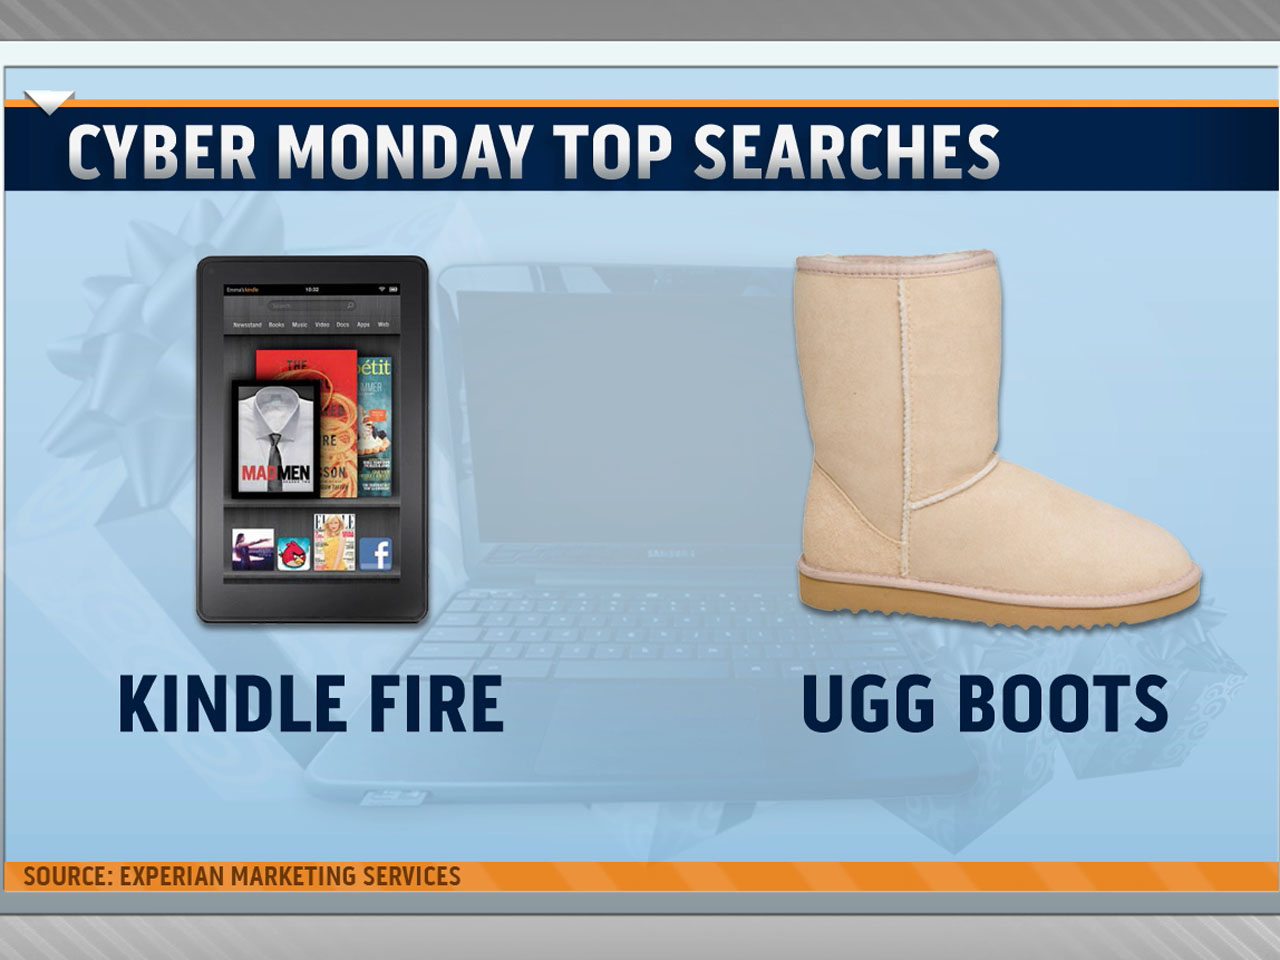 d835681f64a Cyber Monday sales soar